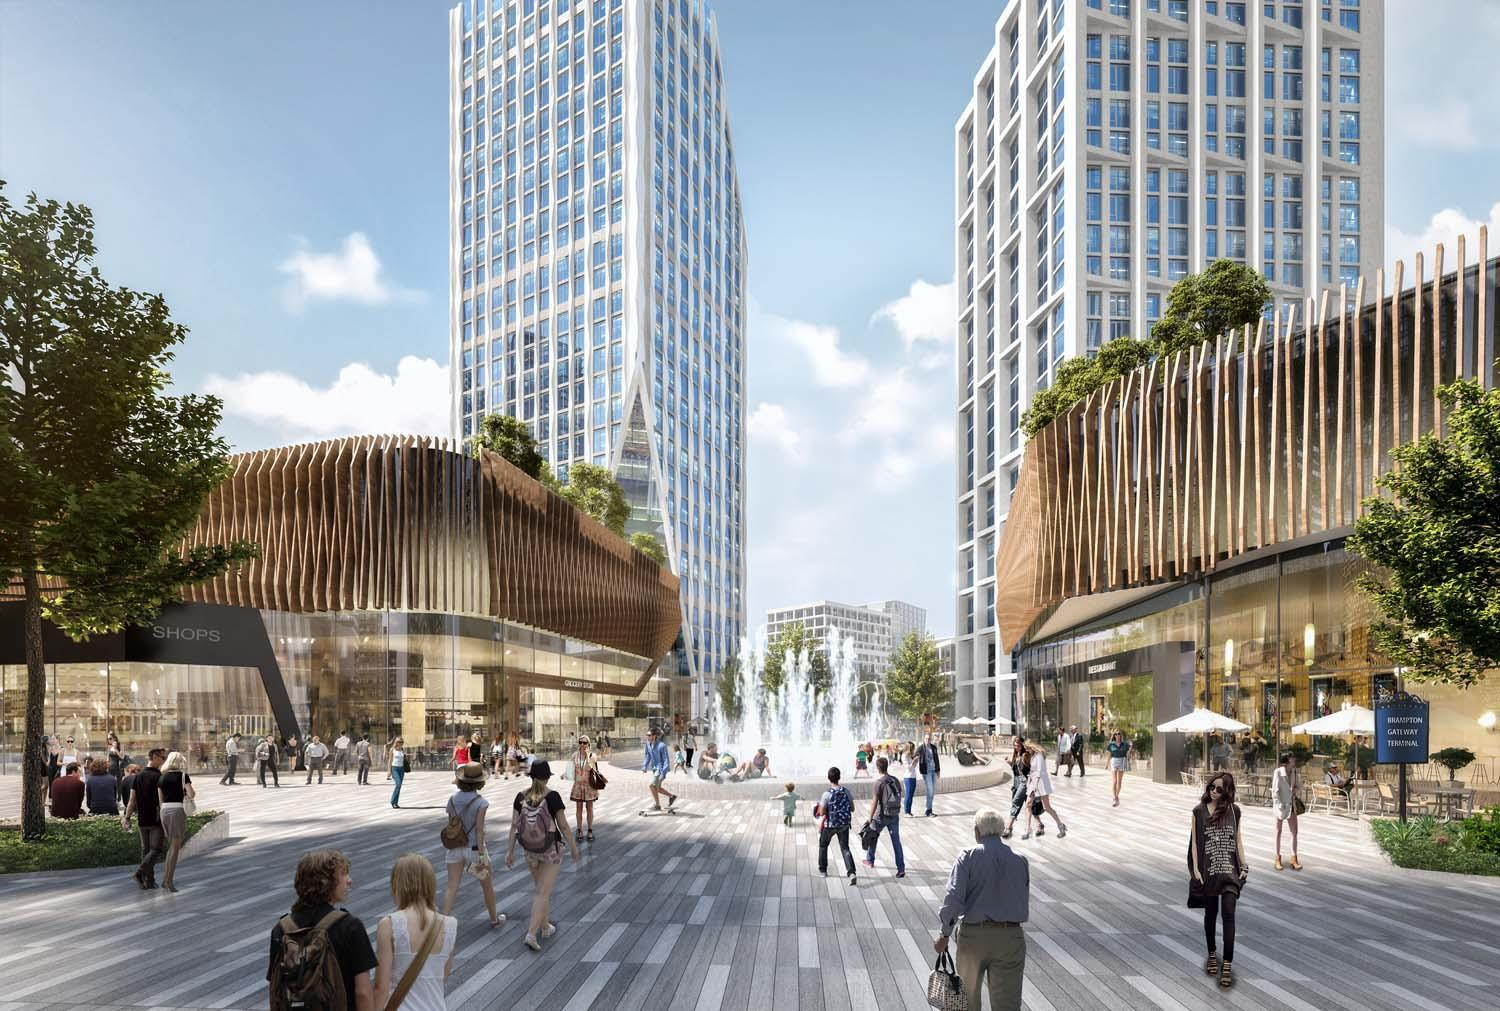 rendering of people enjoying a pedestrian promenade with a fountain, lined with shops and residential towers visible in the background